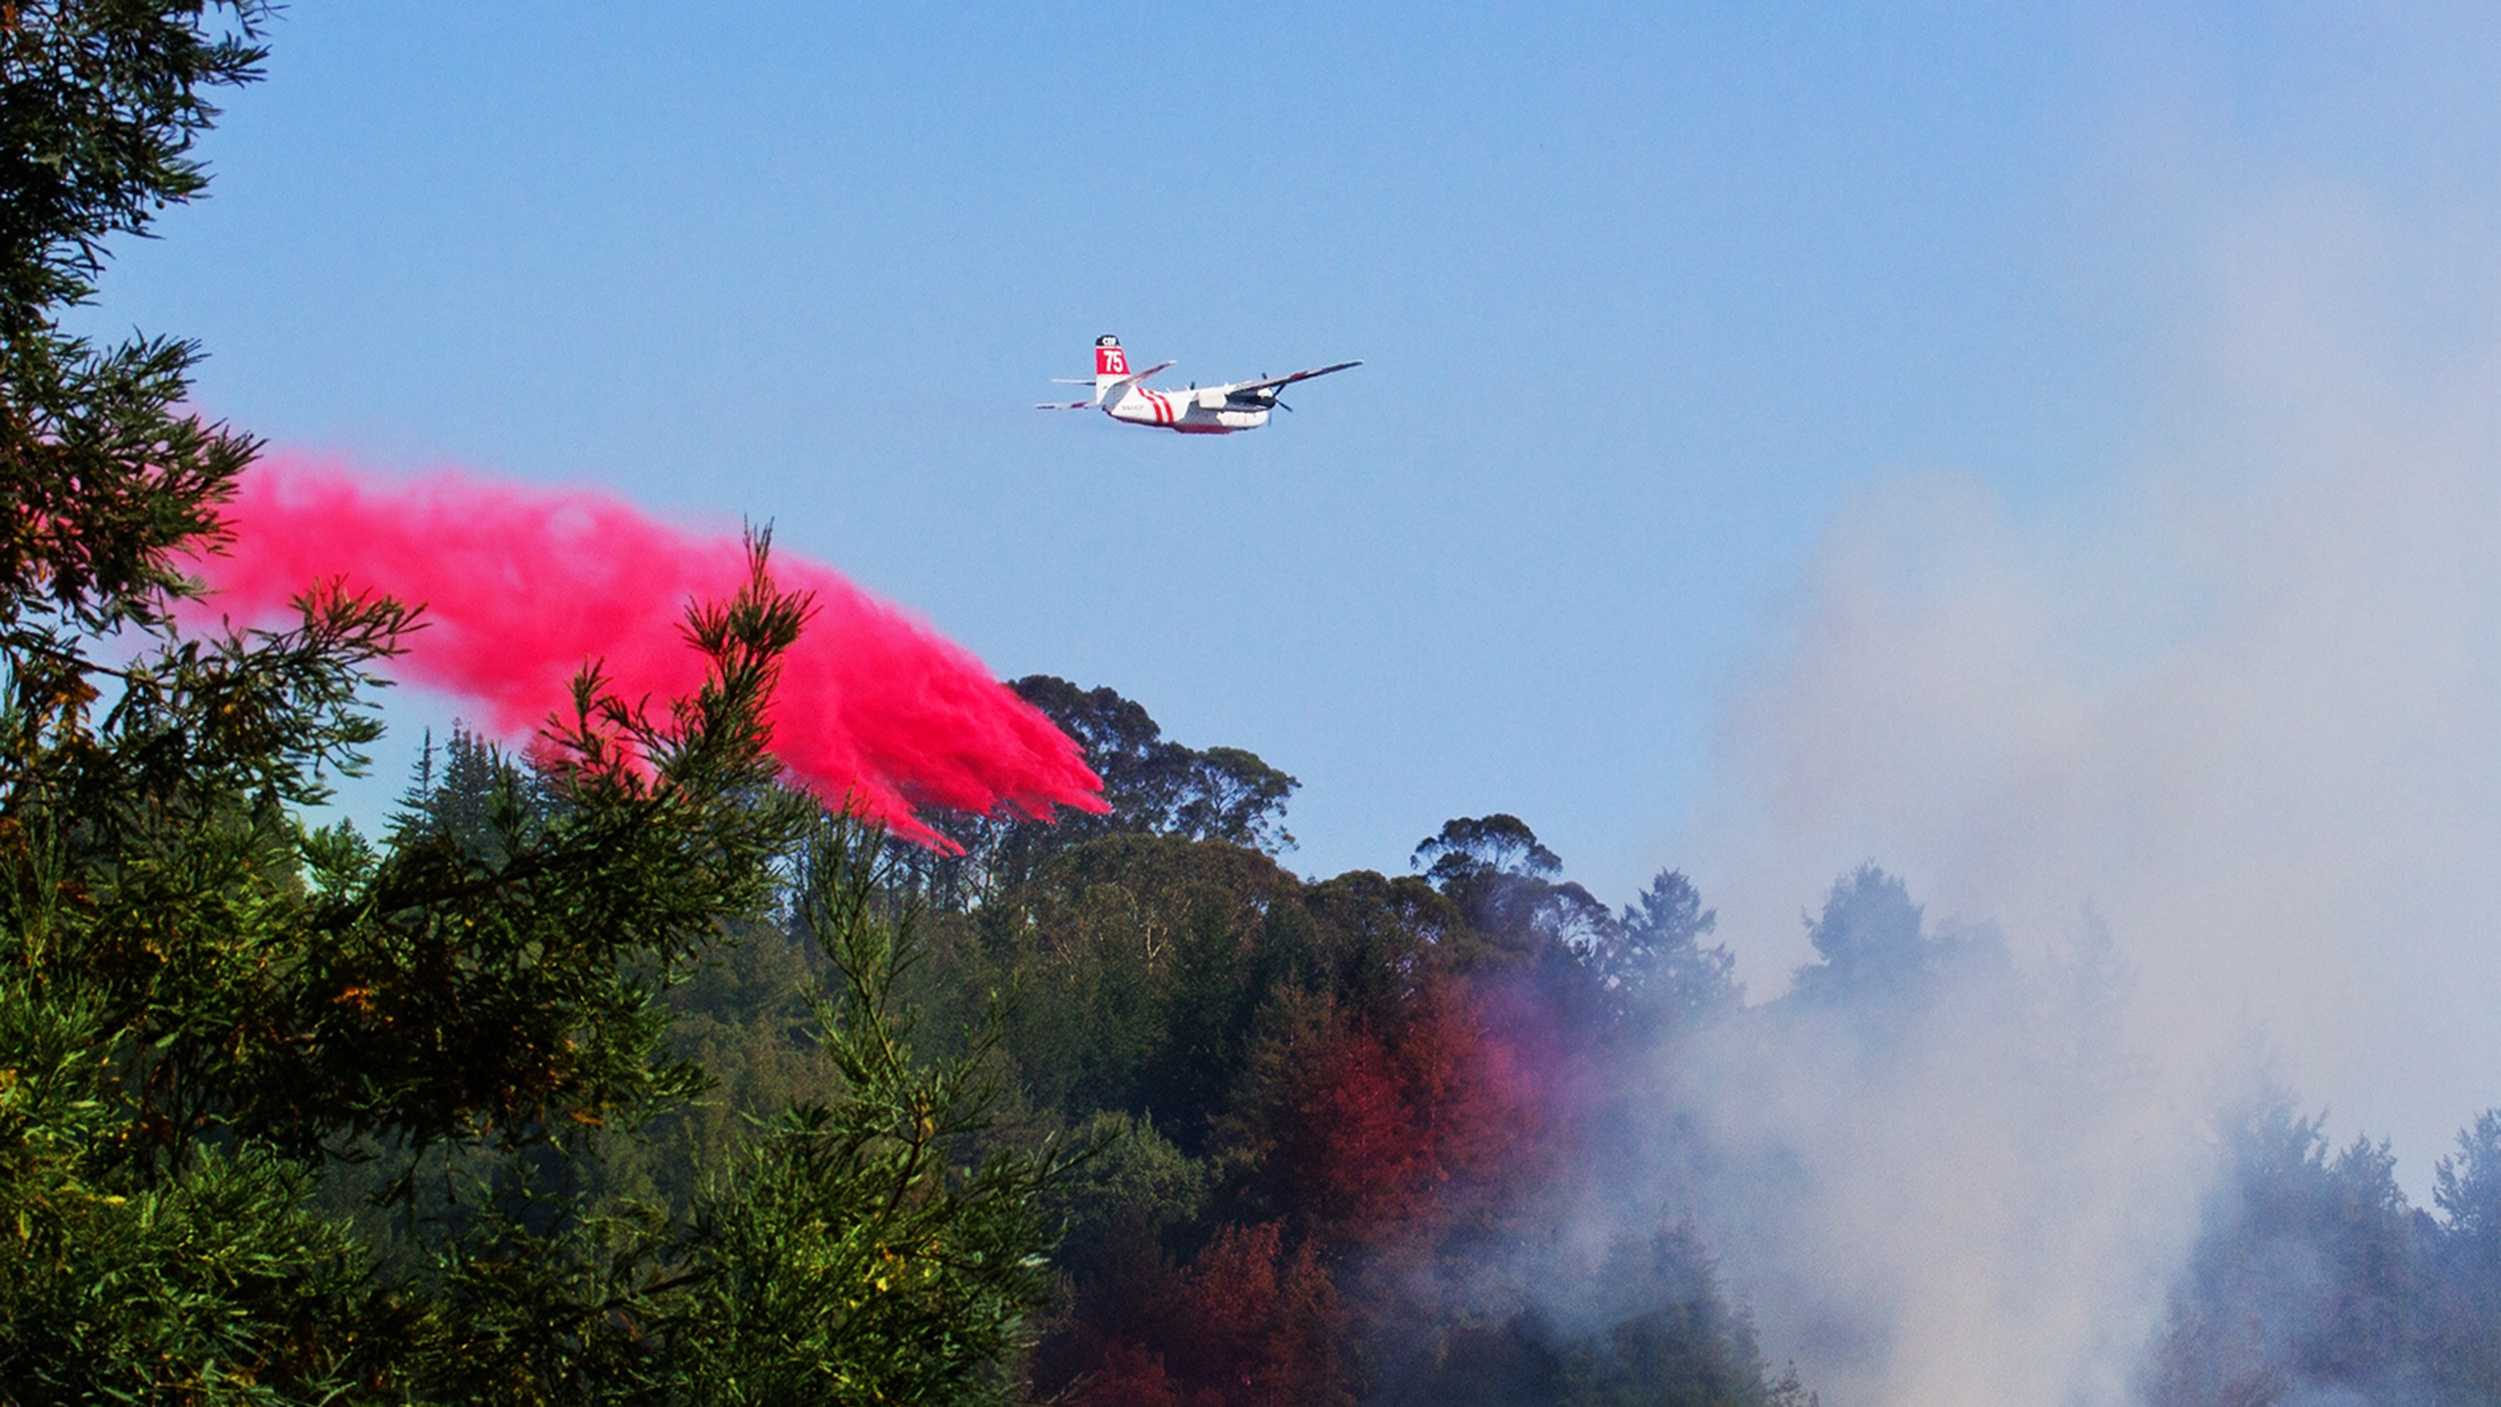 A small wildfire in Scotts Valley was quickly doused by CalFire on July 30, 2015.